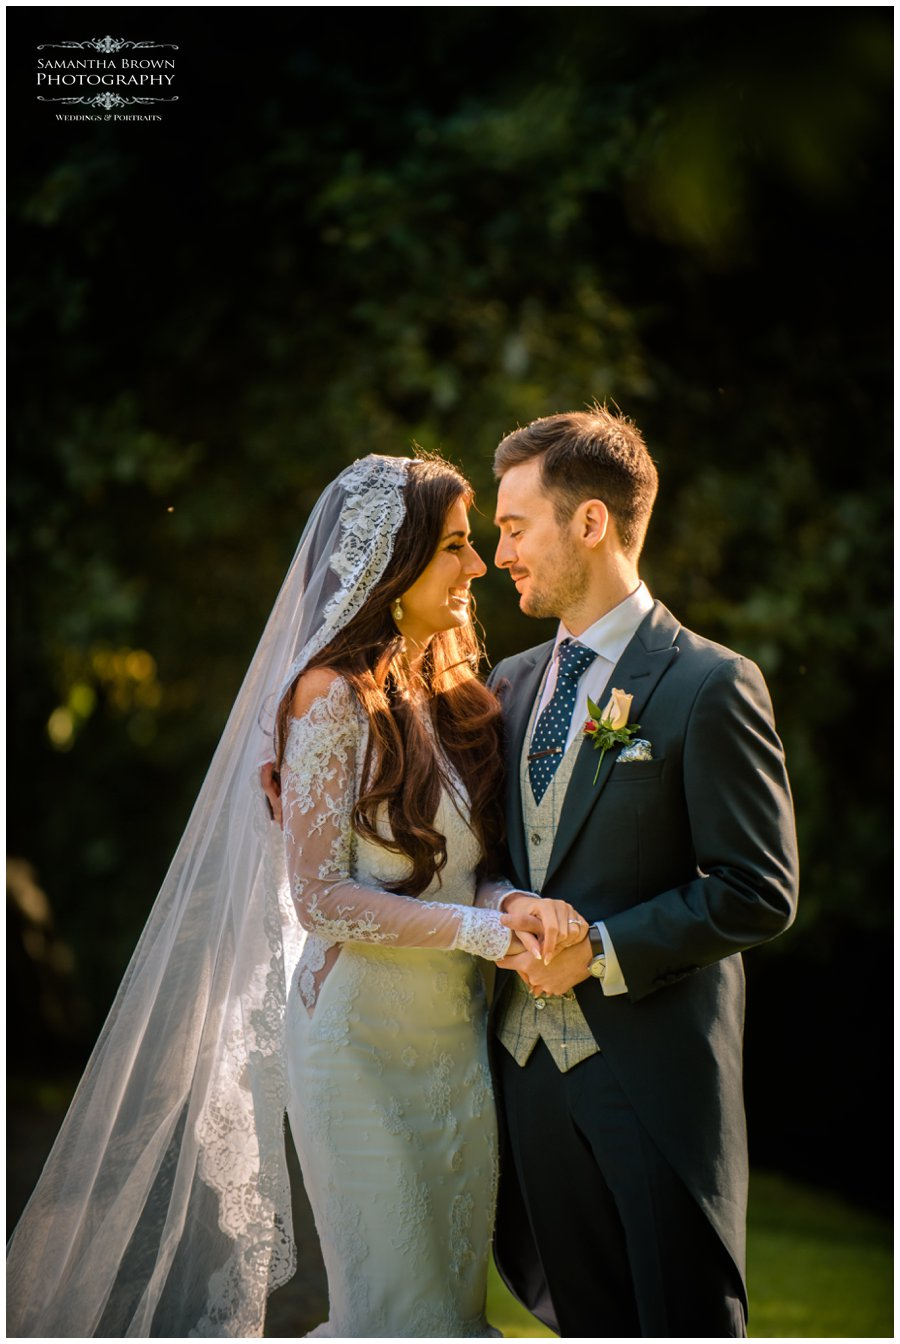 Mitton Hall Wedding Lauretta & Ash's Mitton Hall Wedding took place on the 22nd September 2016.